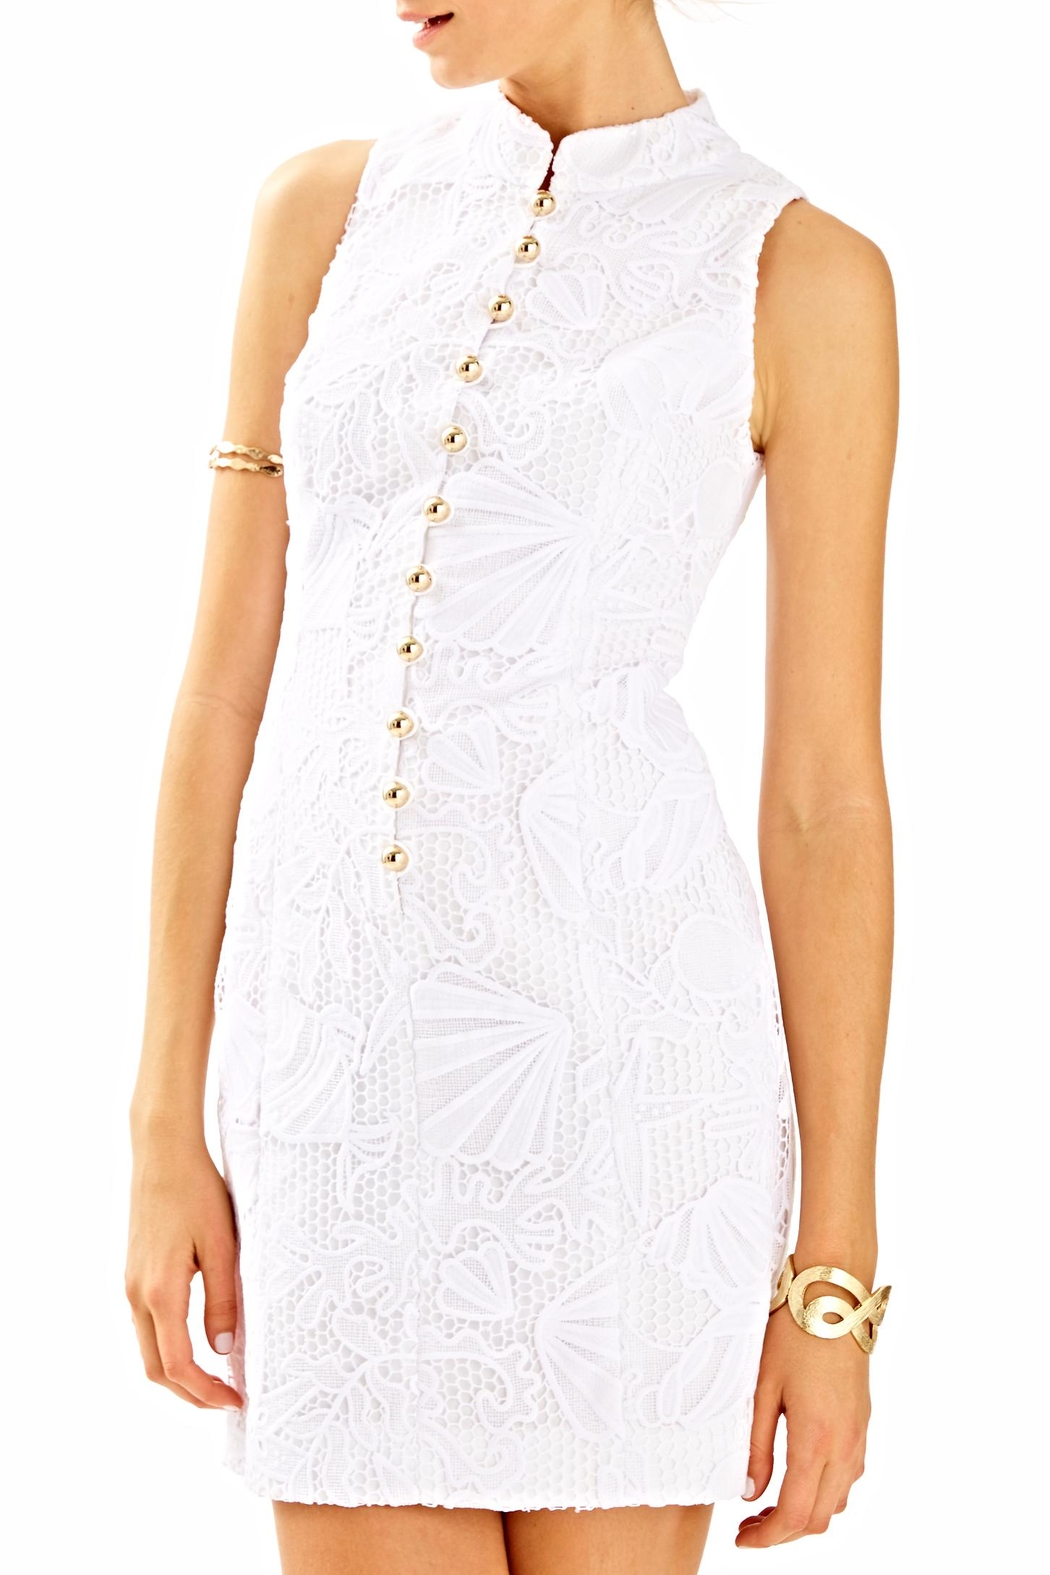 Lilly Pulitzer Alexa Shift Dress - Main Image